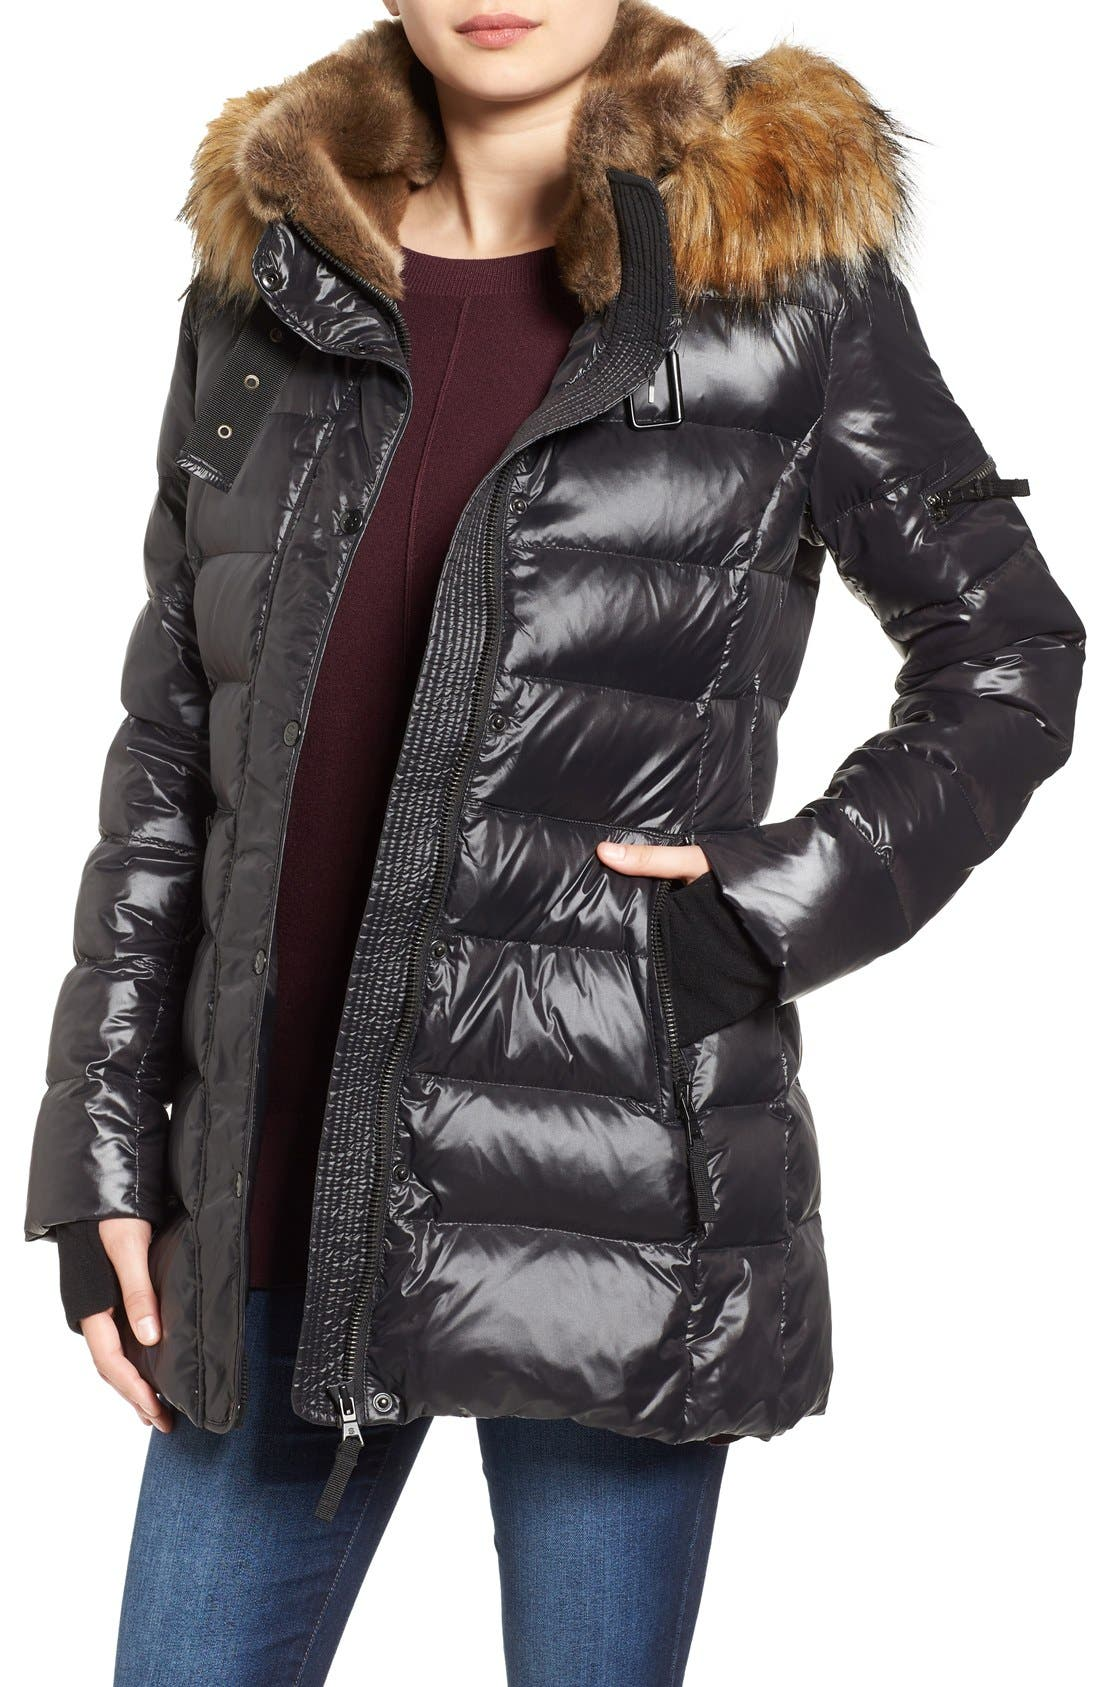 'Chelsea' Gloss Down Jacket with Removable Hood and Faux Fur Trim, Main, color, 002